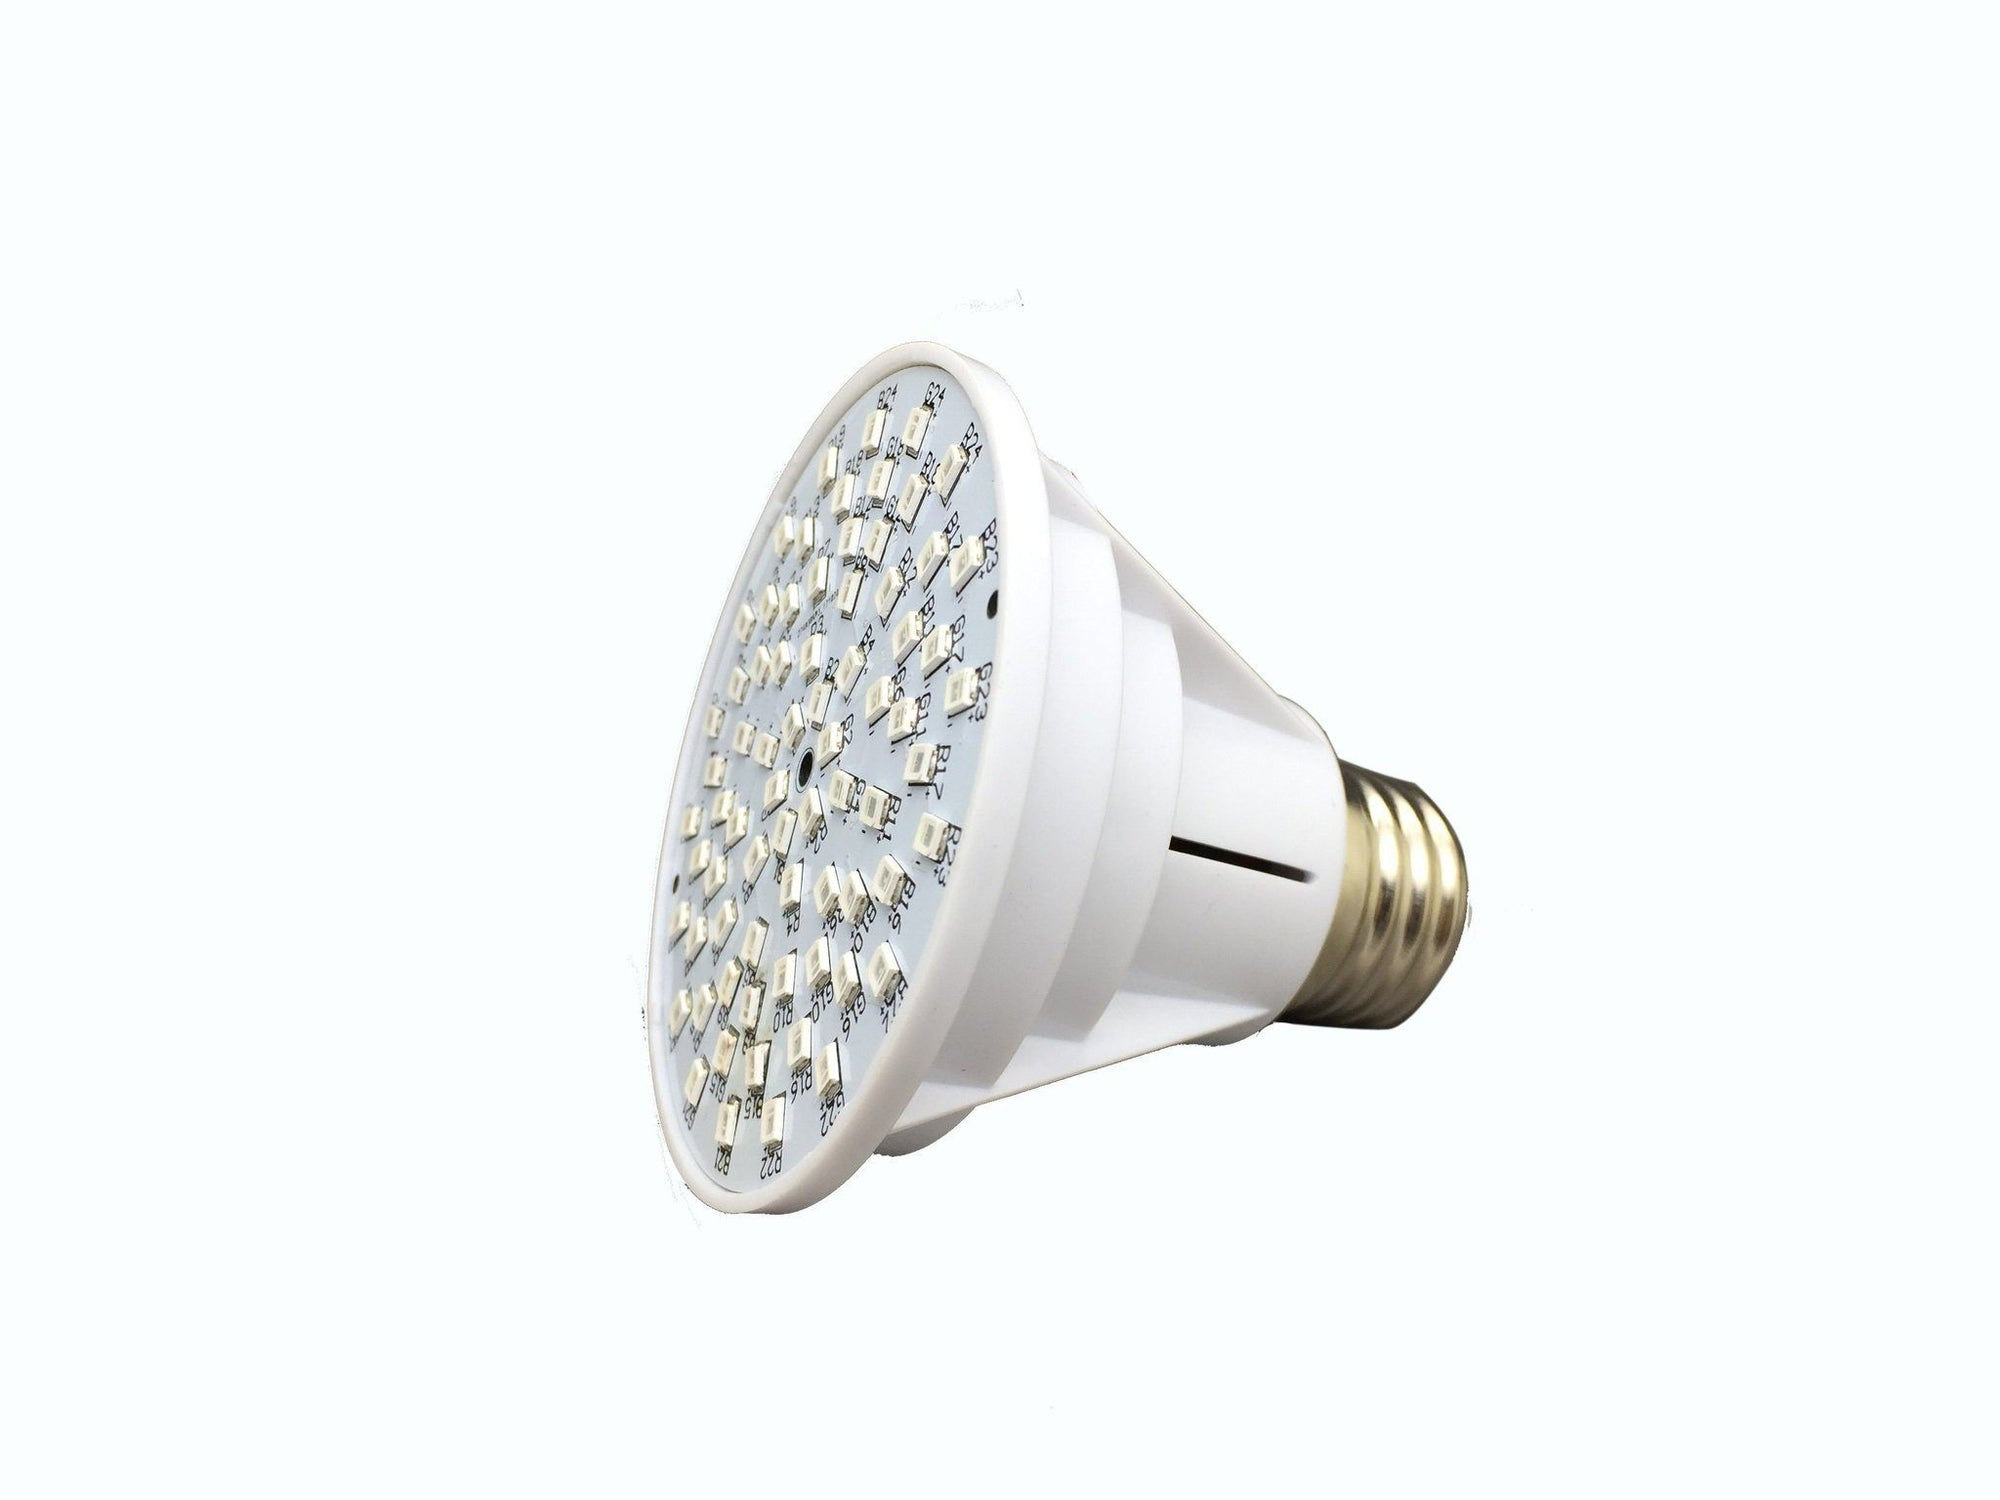 Pool Tone® Color LED Bulb 1900 Lumens 120V Edison Base E27 for Pentair® Spabrite® Home & Garden > Lighting > Light Bulbs Pentair